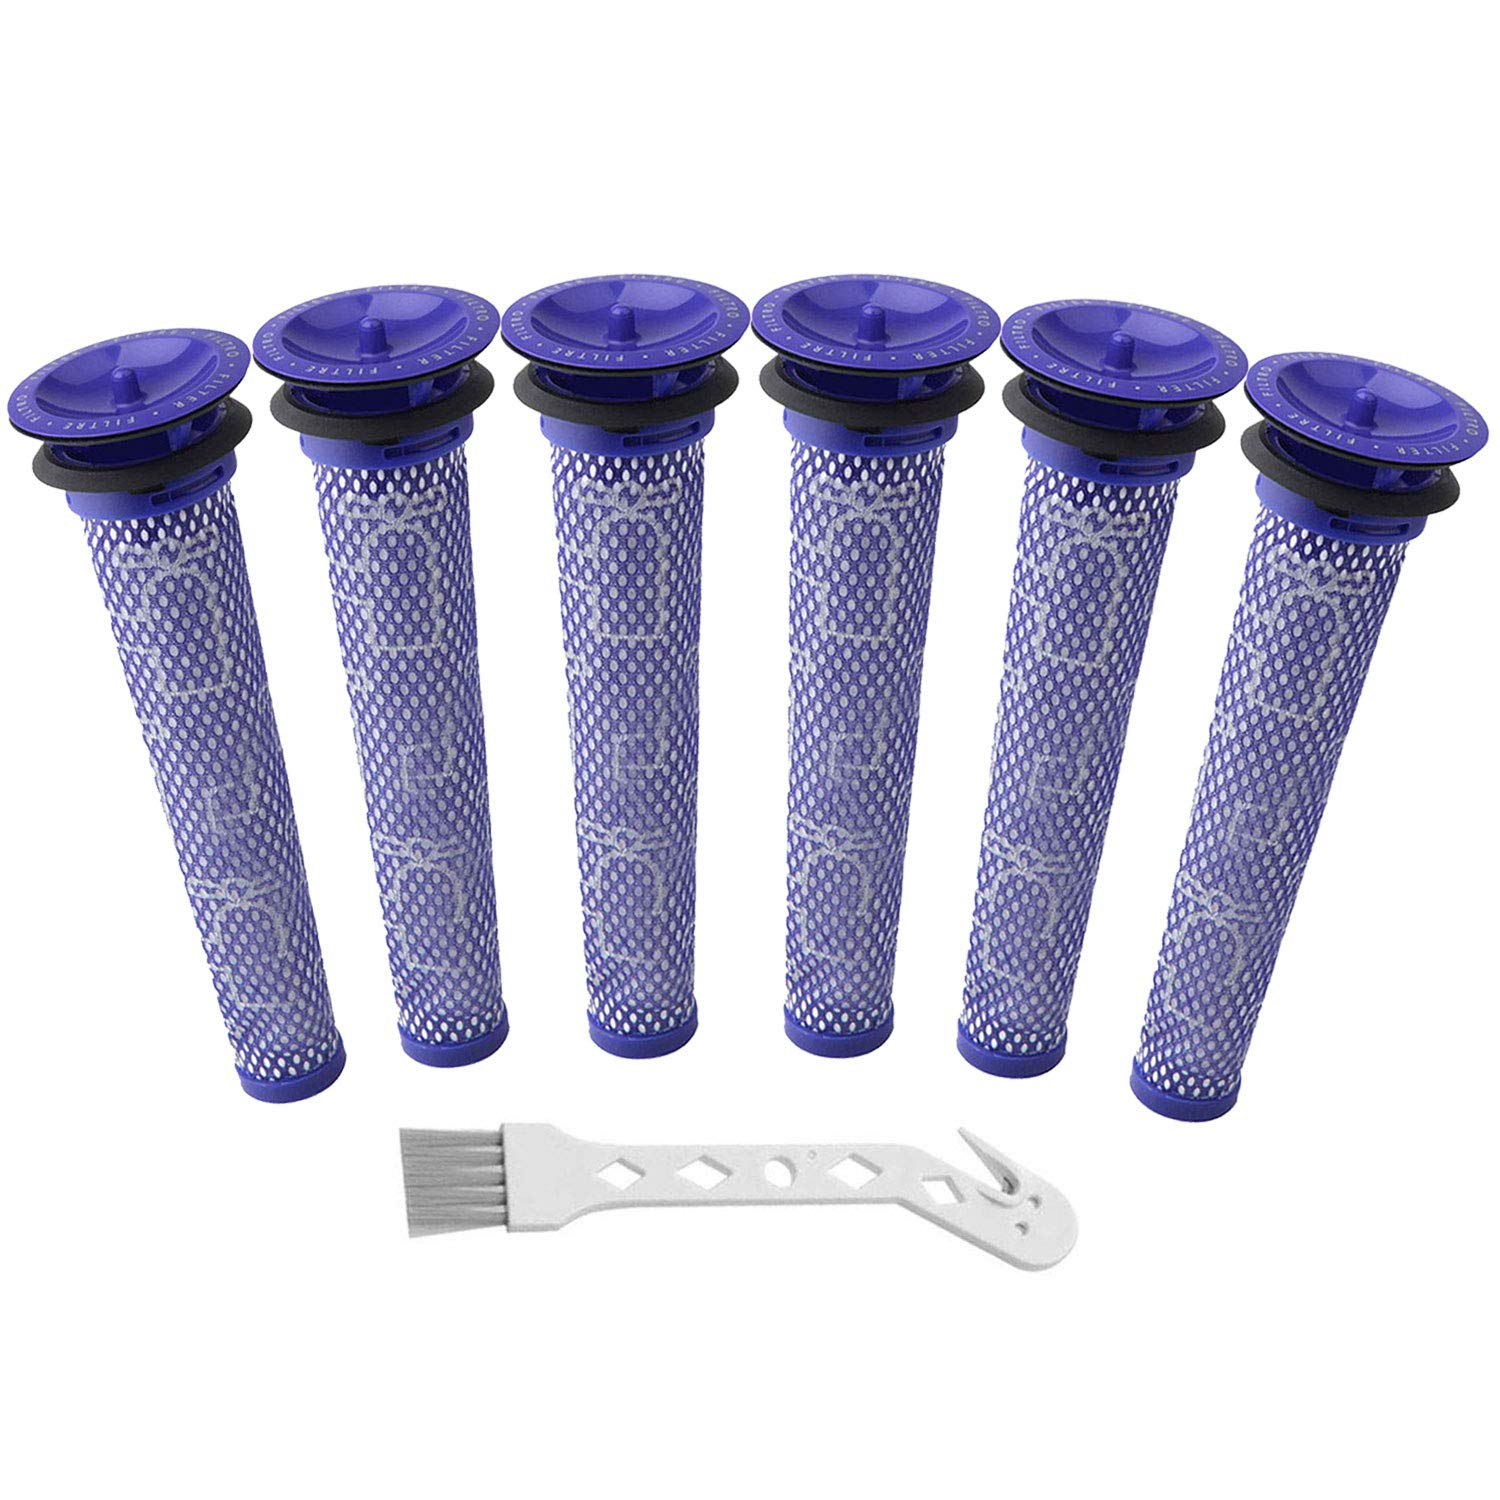 Wolfish 6 Pack Filter Replacements for Dyson Absolute Animal Motorhead V8+, V8, V7, V6, DC62, DC61, DC59, DC58 Vacuum, Replaces Part 965661-01